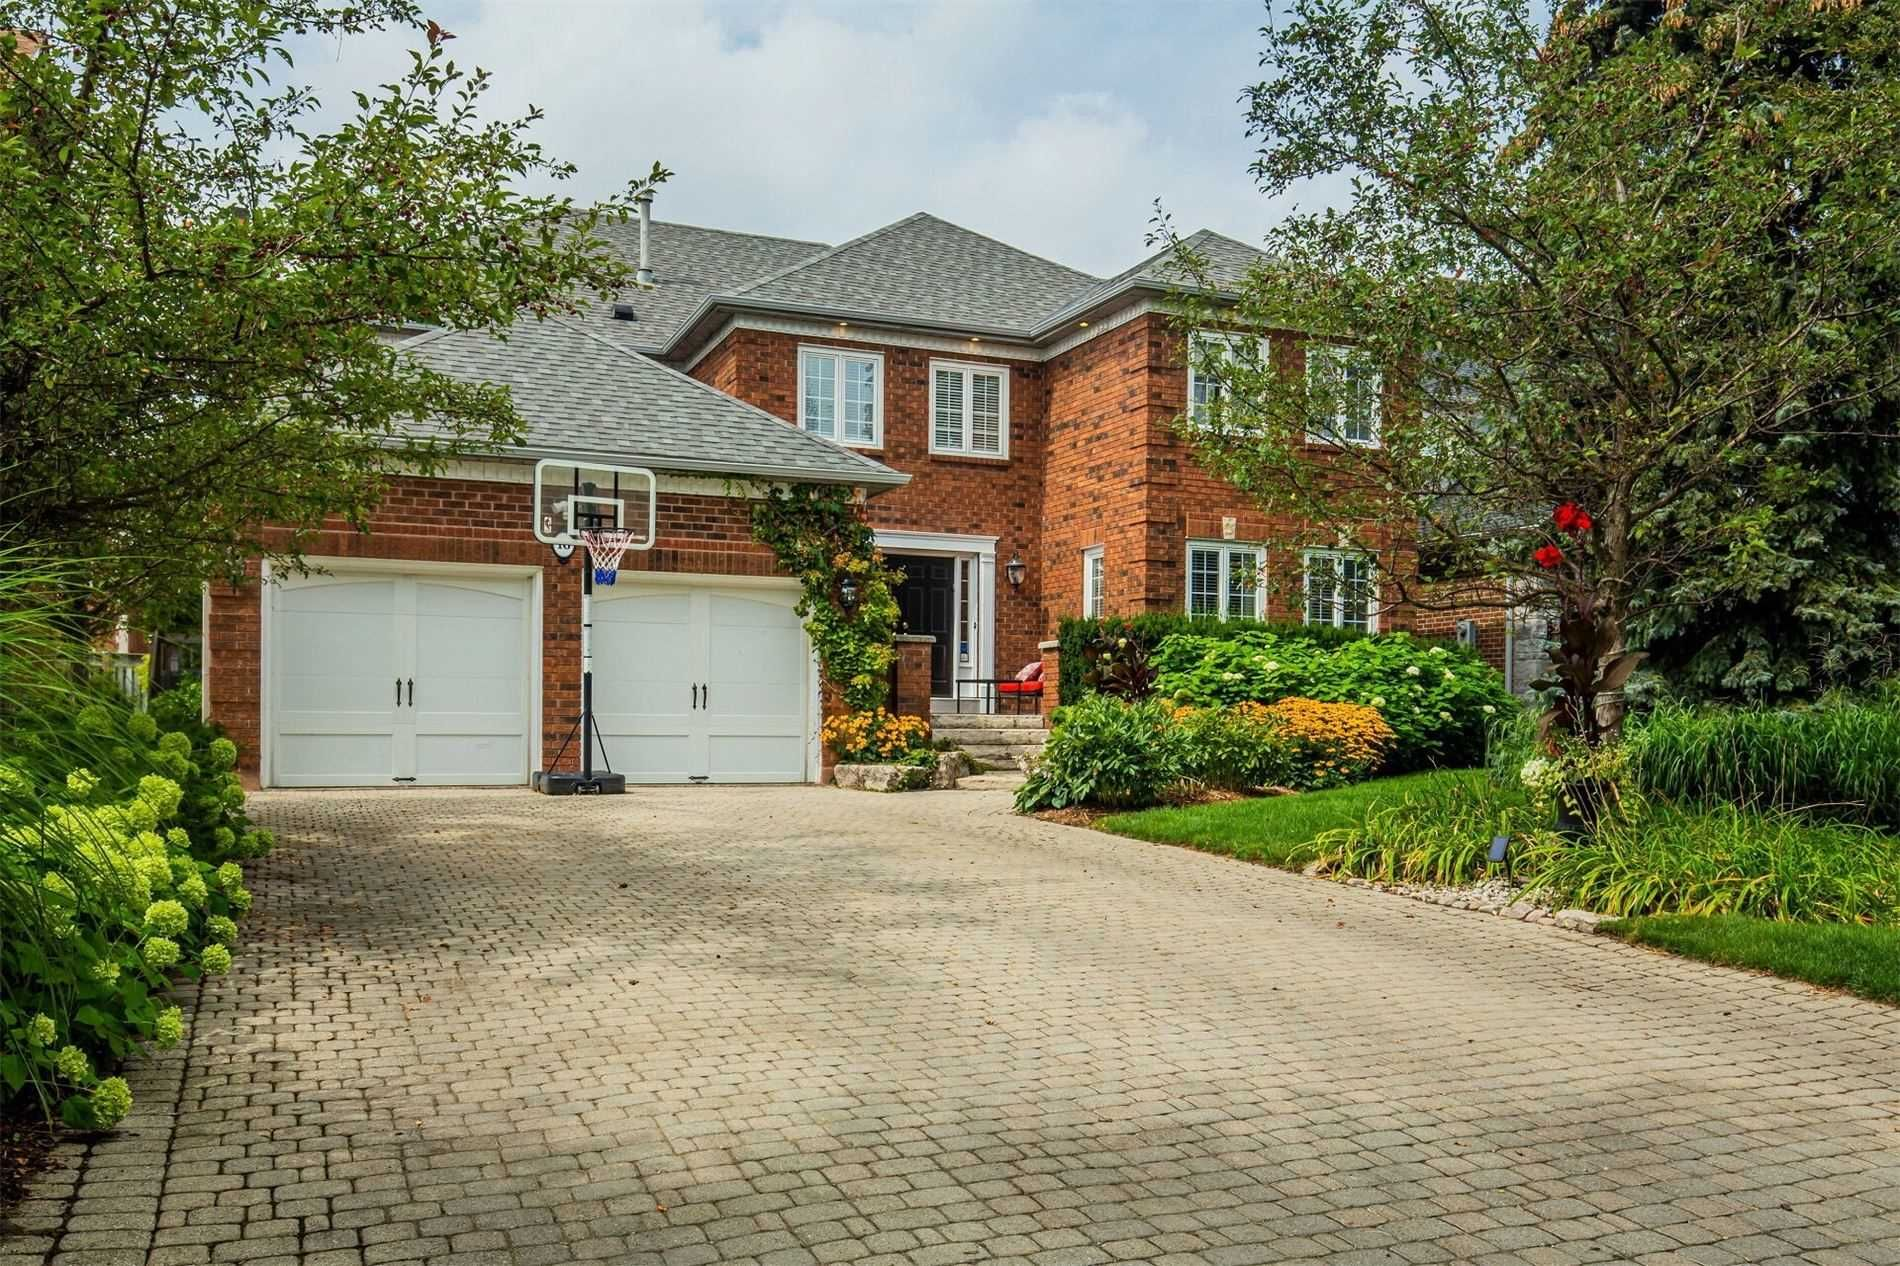 Main Photo: 16 Dalewood Drive in Richmond Hill: Bayview Hill House (2-Storey) for sale : MLS®# N5372335